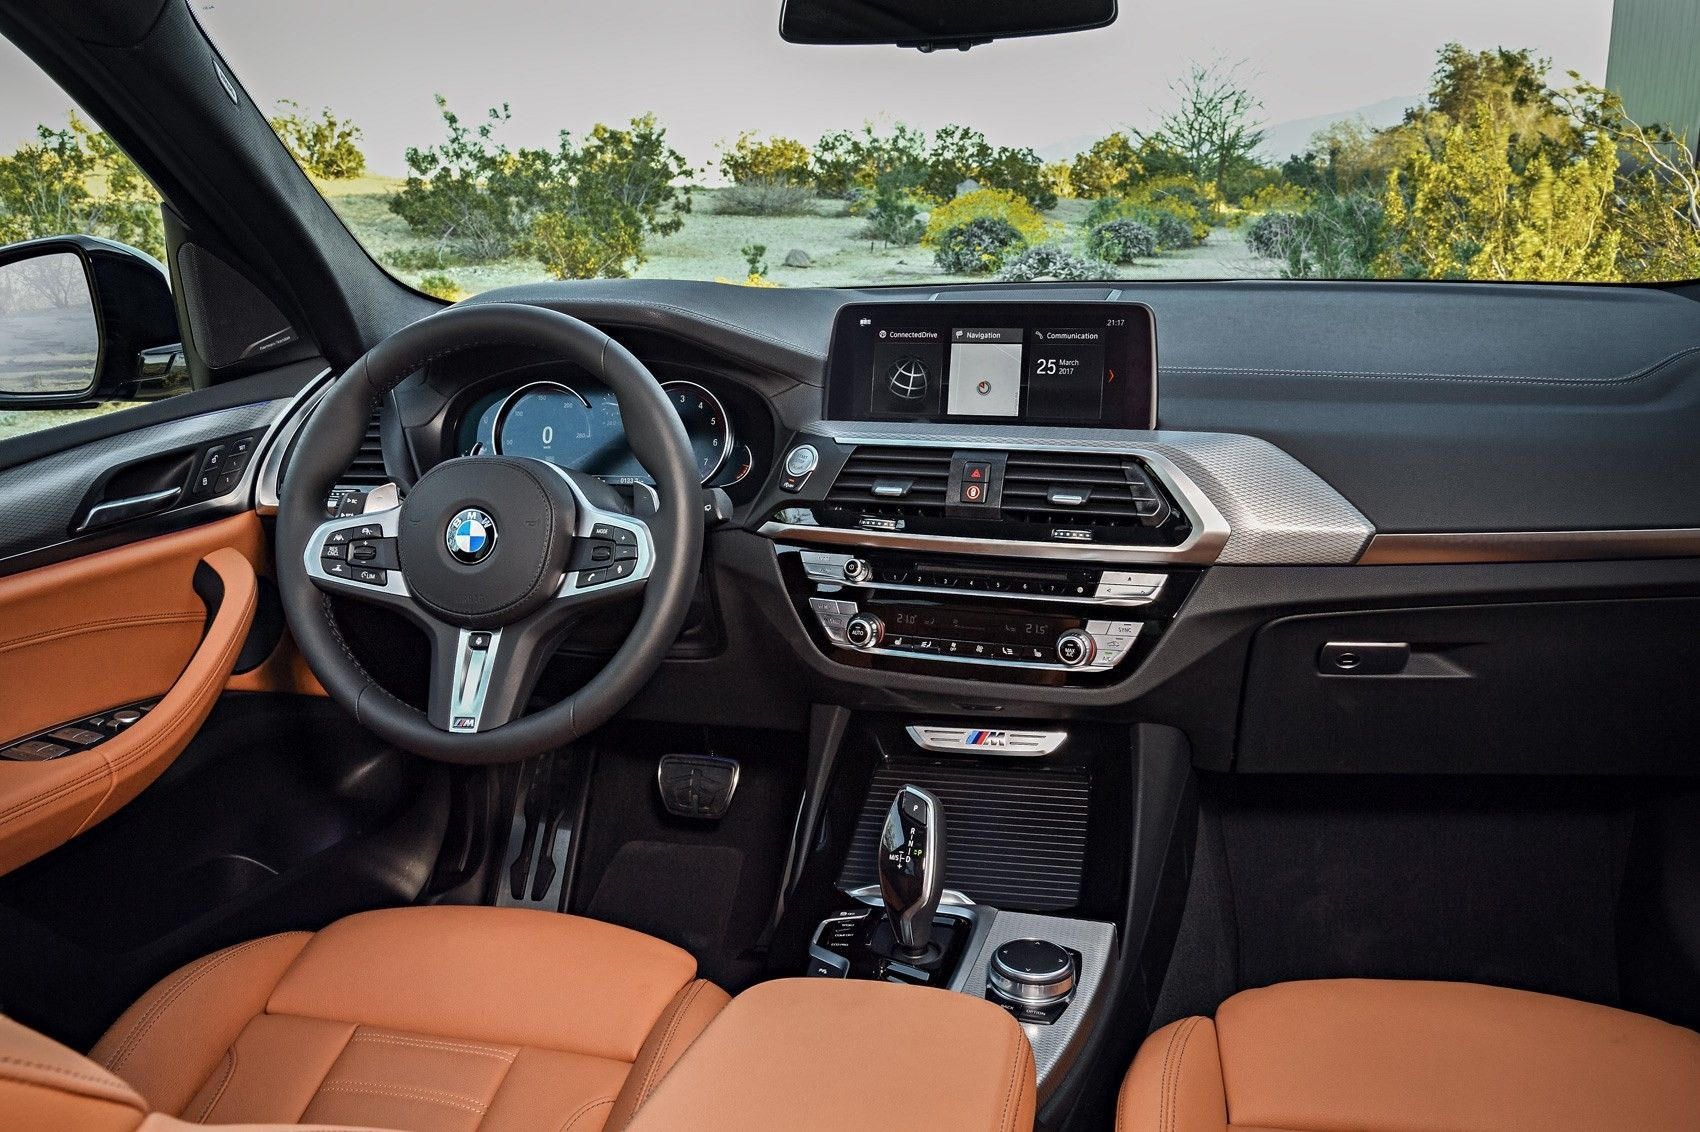 X3 Dimensions 2019 Redesign And Price With Images Bmw X3 Bmw